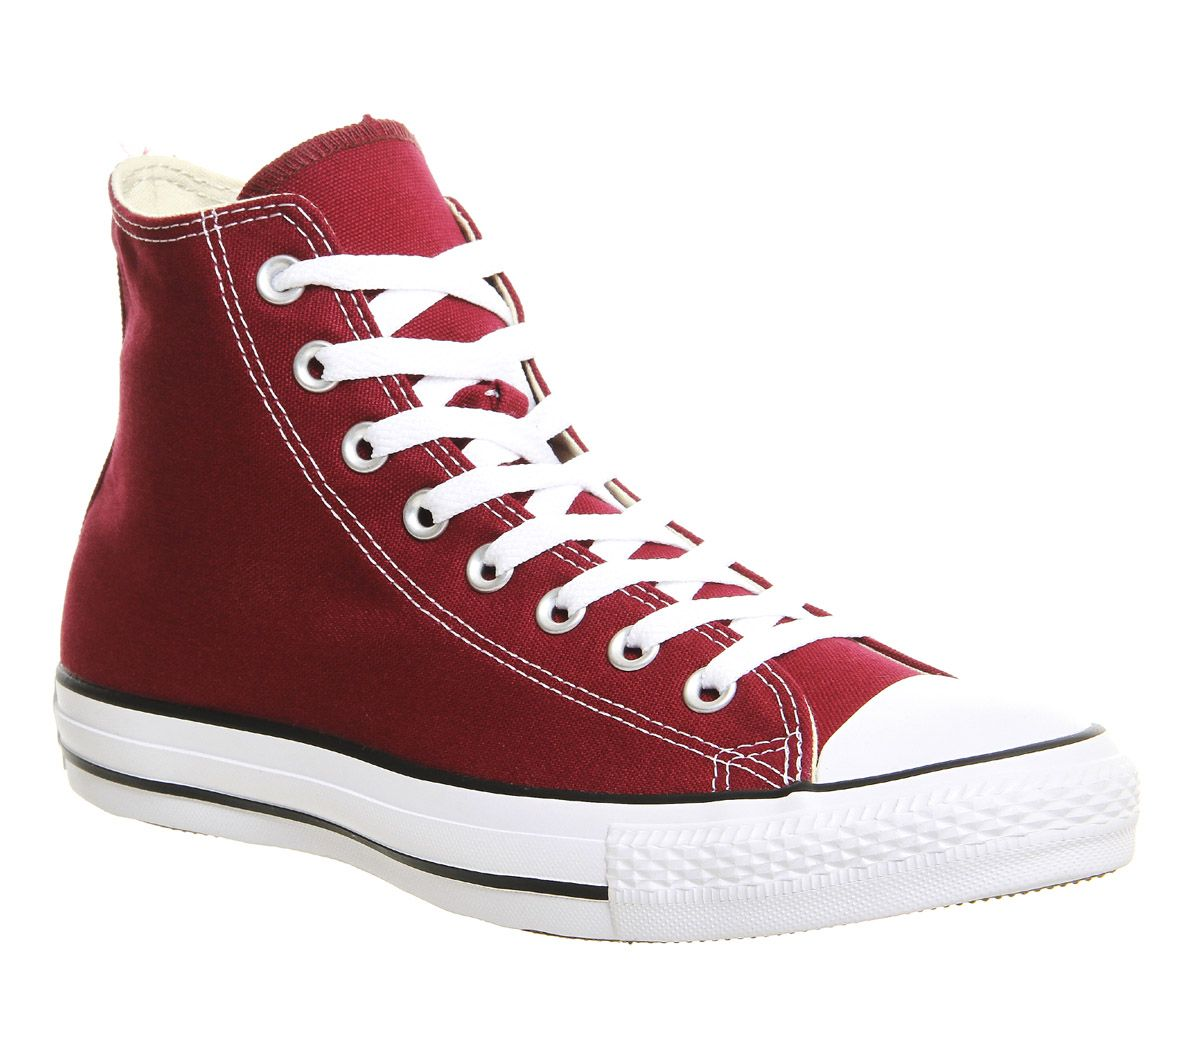 7457efdad0ed Converse All Star Hi Maroon - Unisex Sports